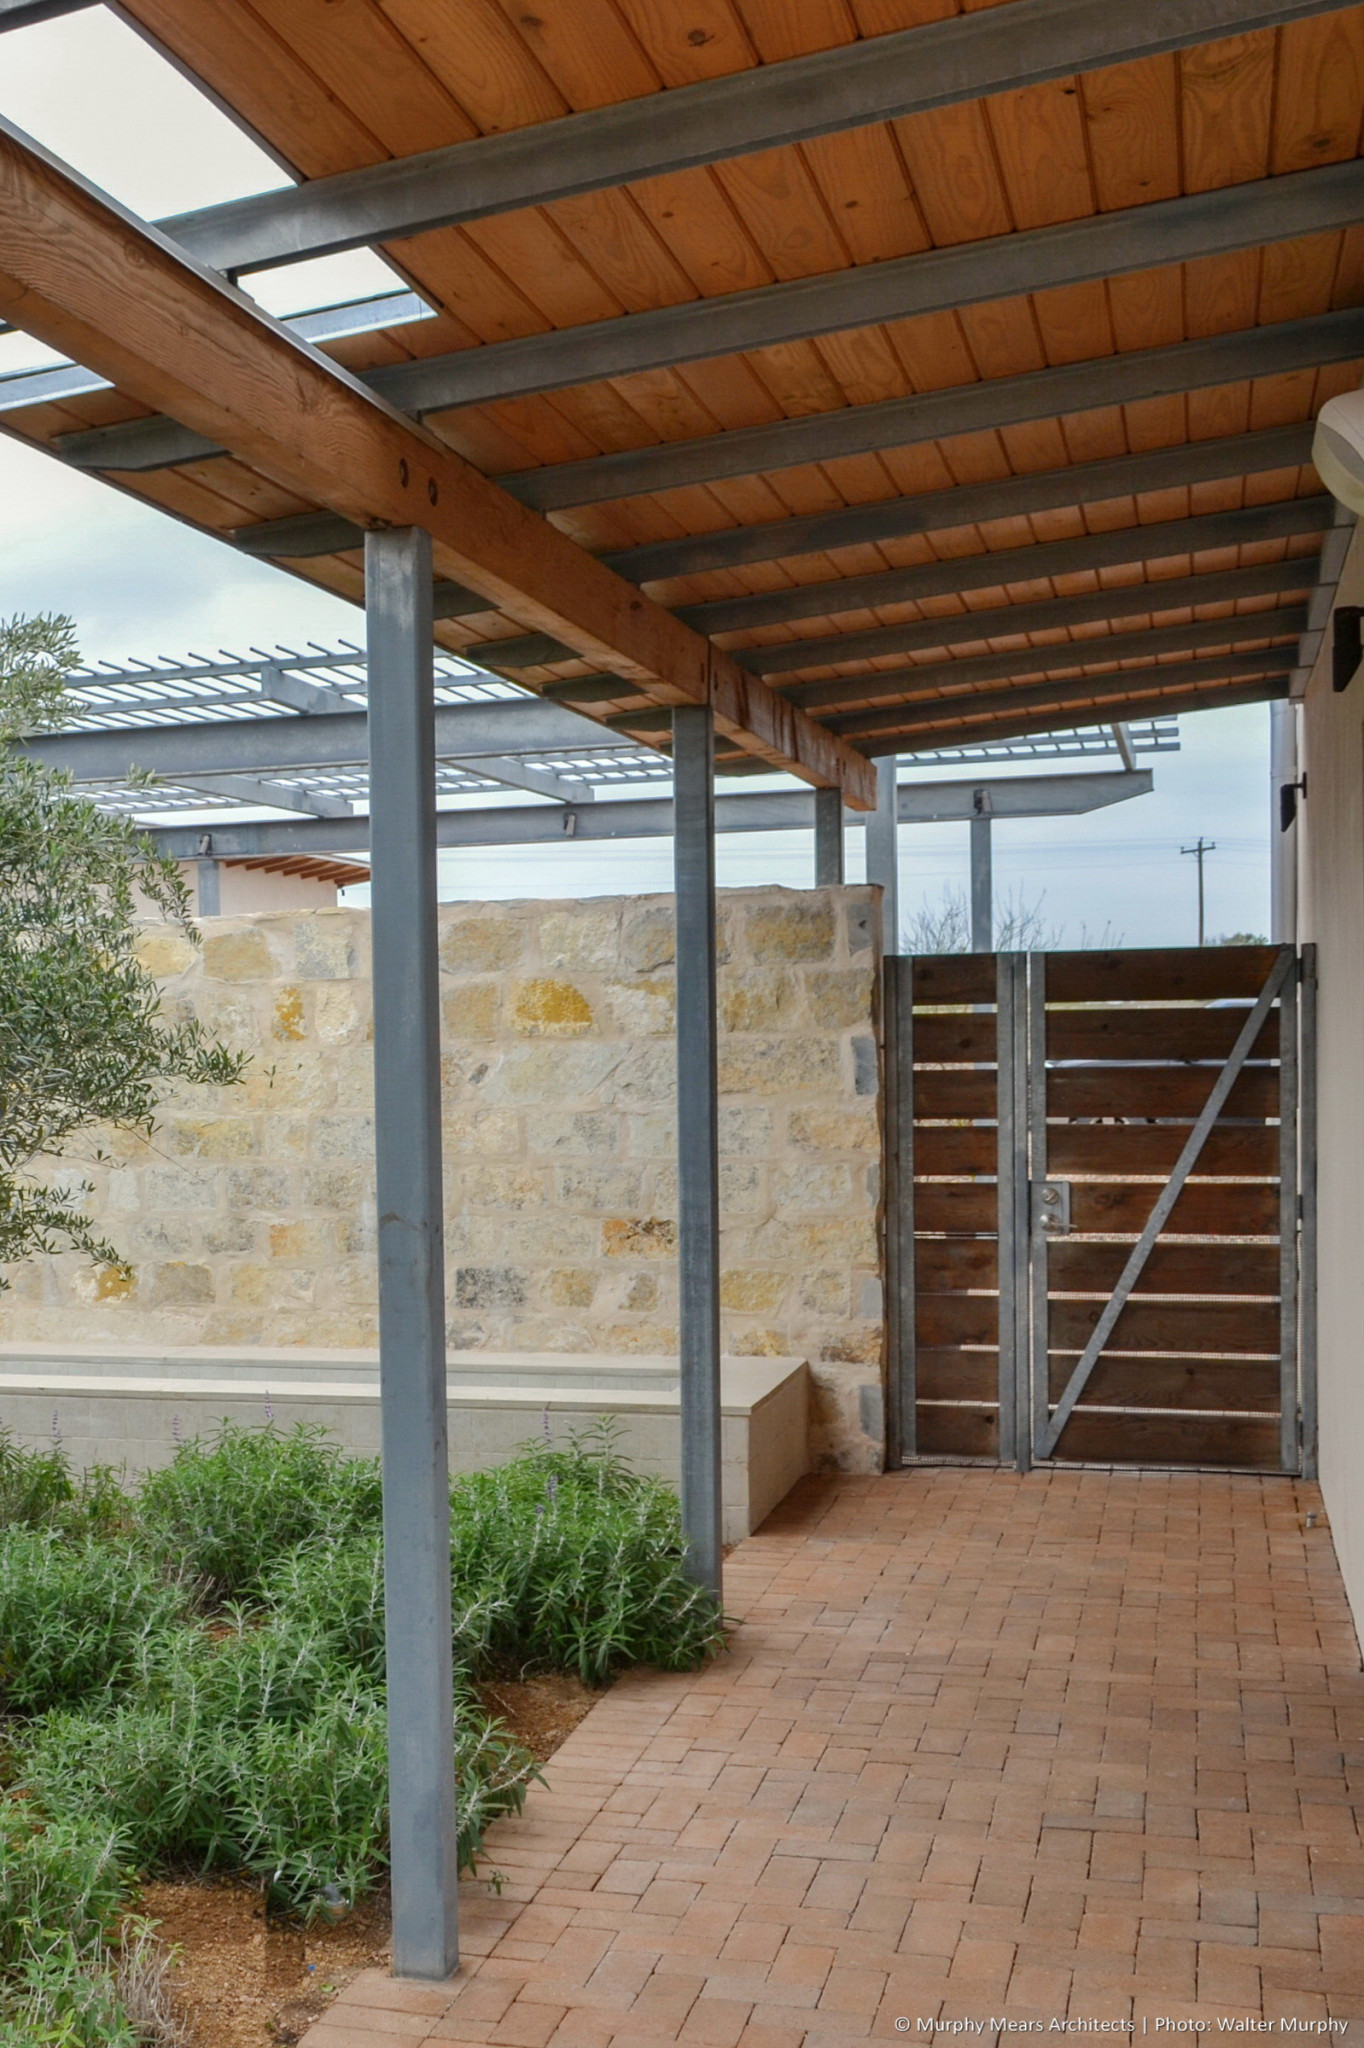 galvanized steel and wood entry gate beneath covered walkway with brick pavers adjacent to stone wall